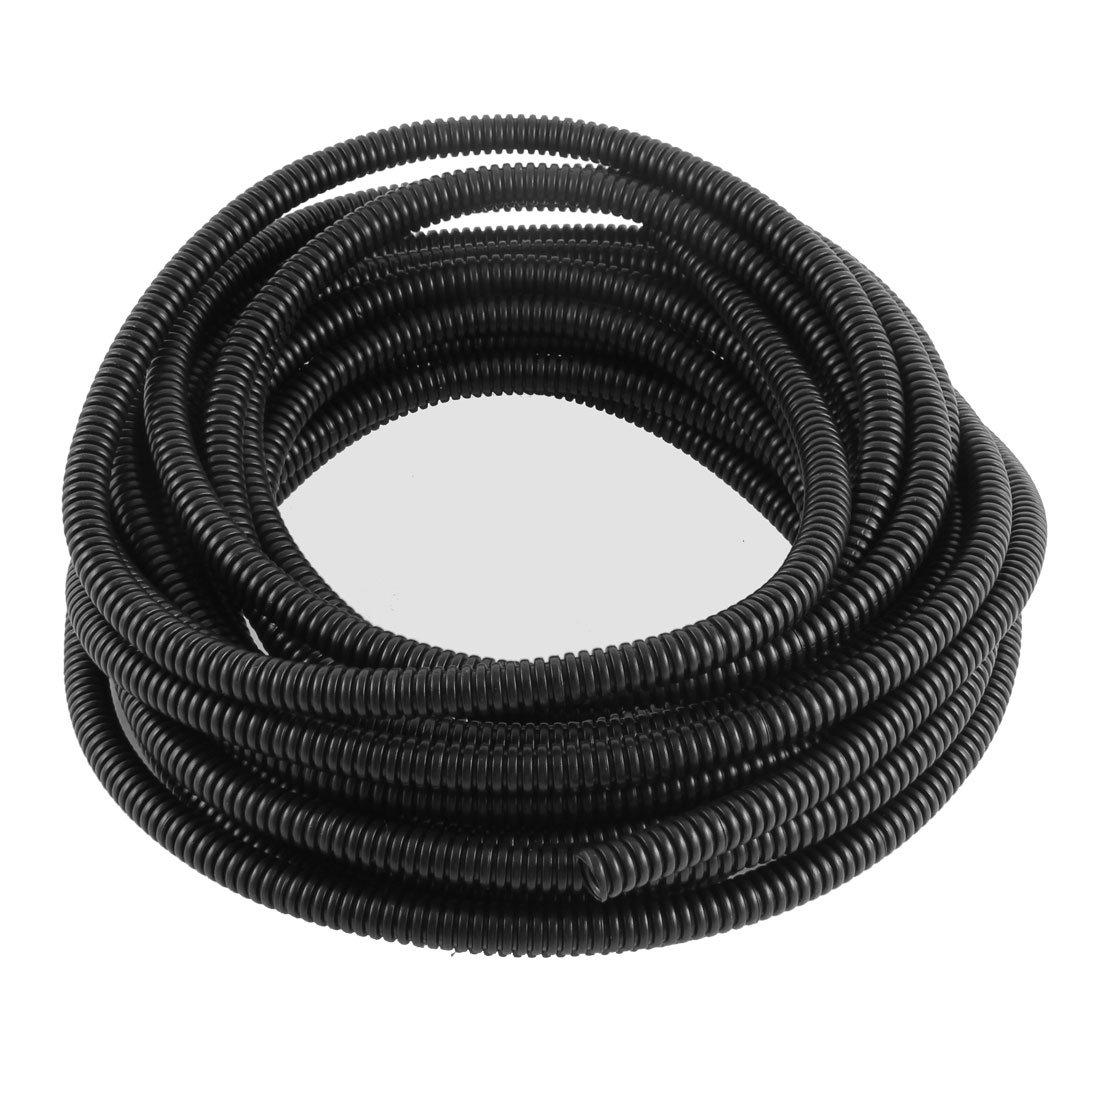 10mm x 8mm Dia Flexible Bellows Hose Corrugated Conduit Cable Tube Tubing Pipe 29.5Ft 9M Long Black